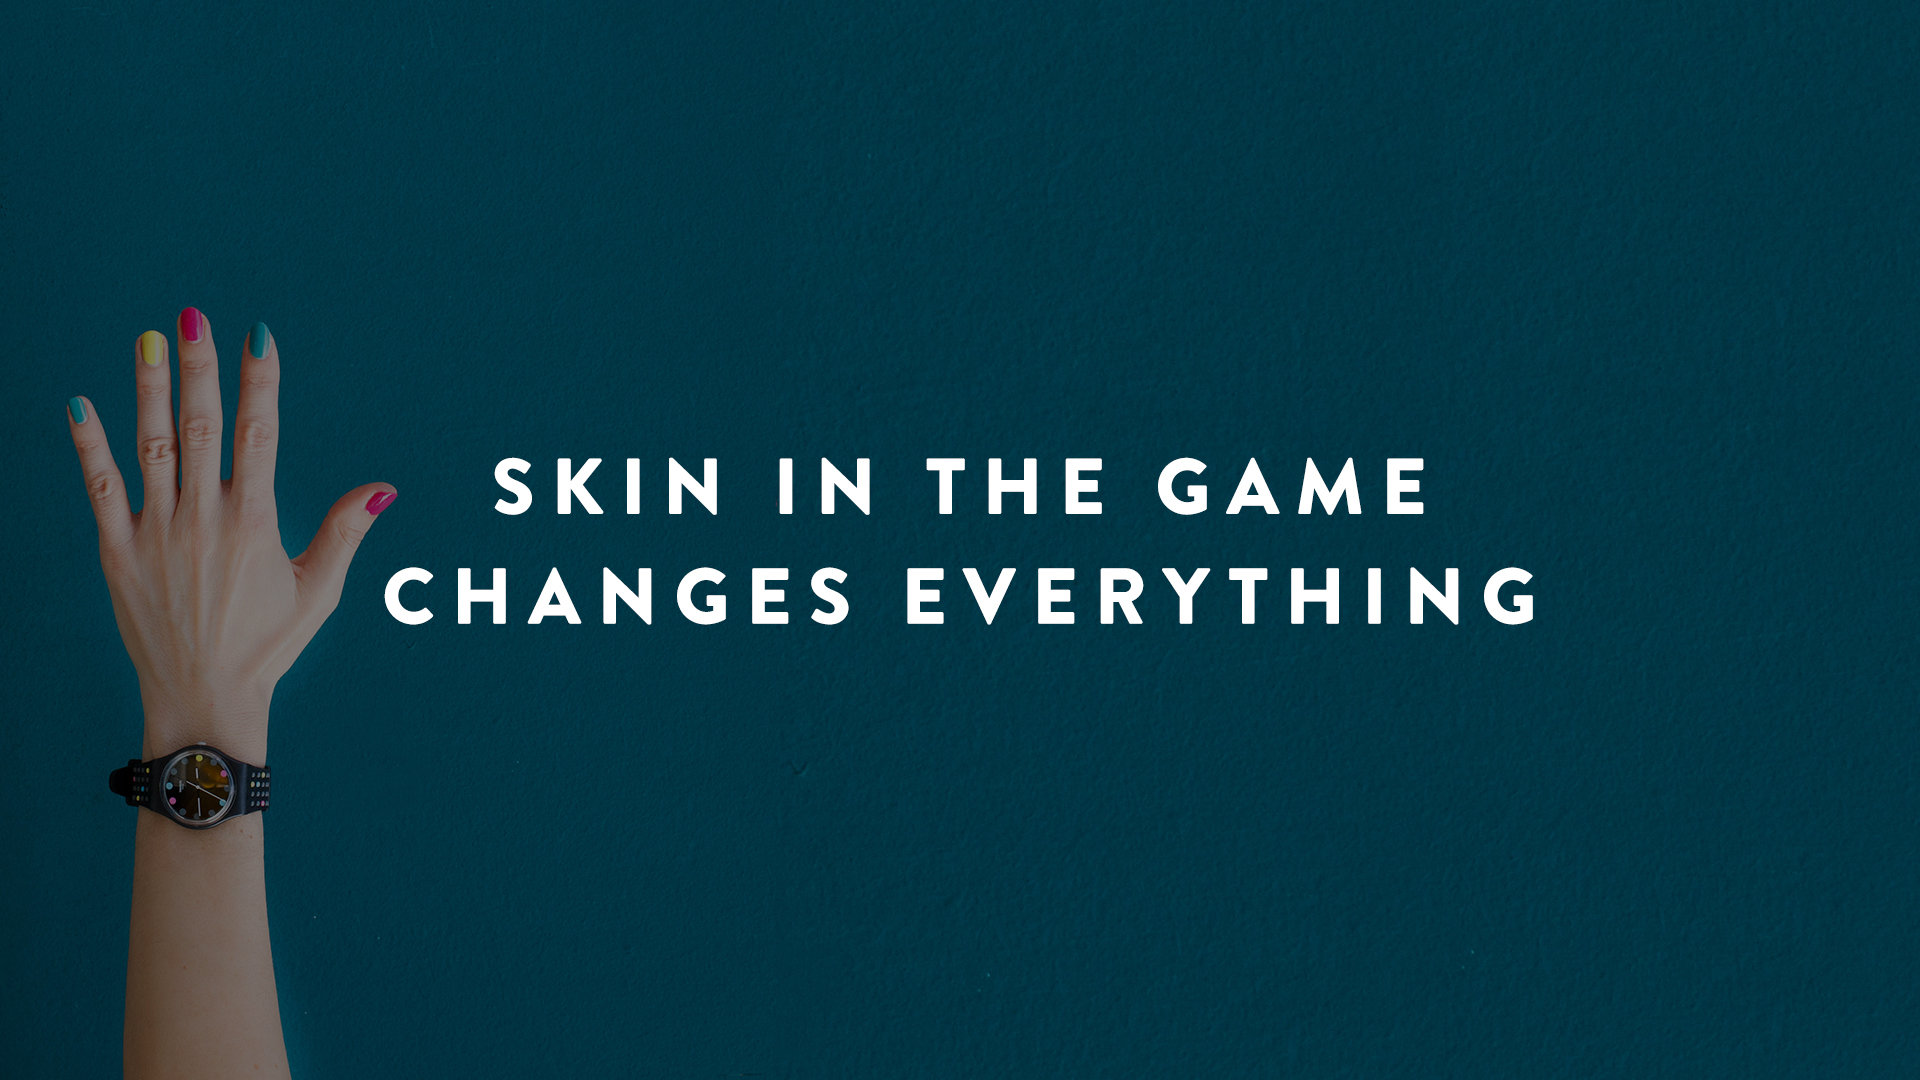 Skin in the Game Changes Everything